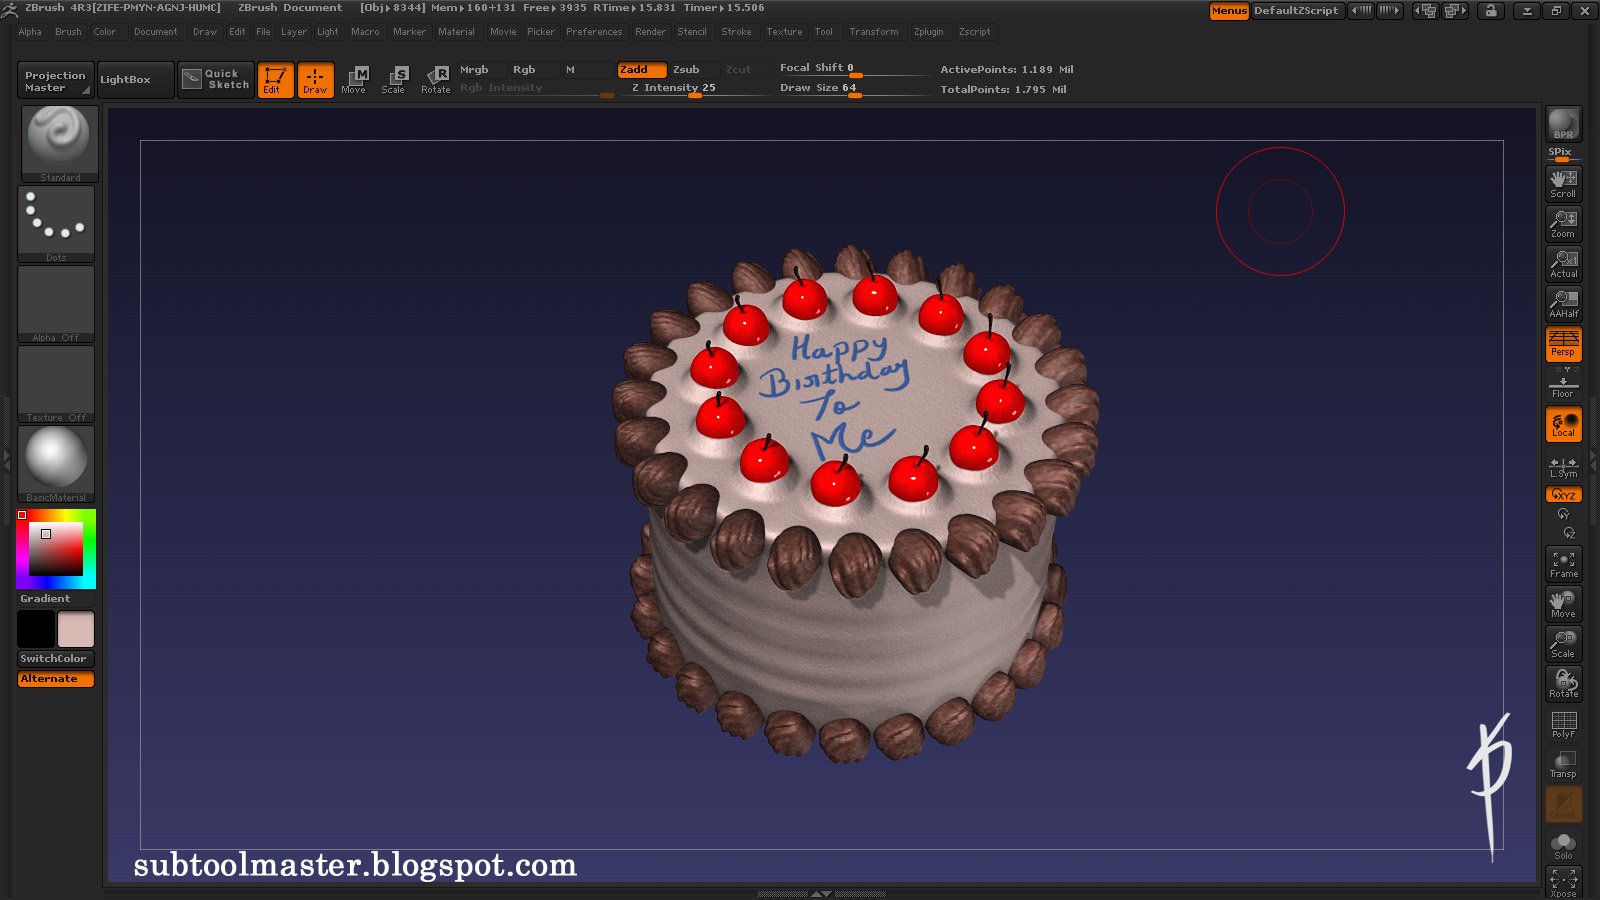 Cake Images Satish : Satish Prajapati CG Artist: January 2013